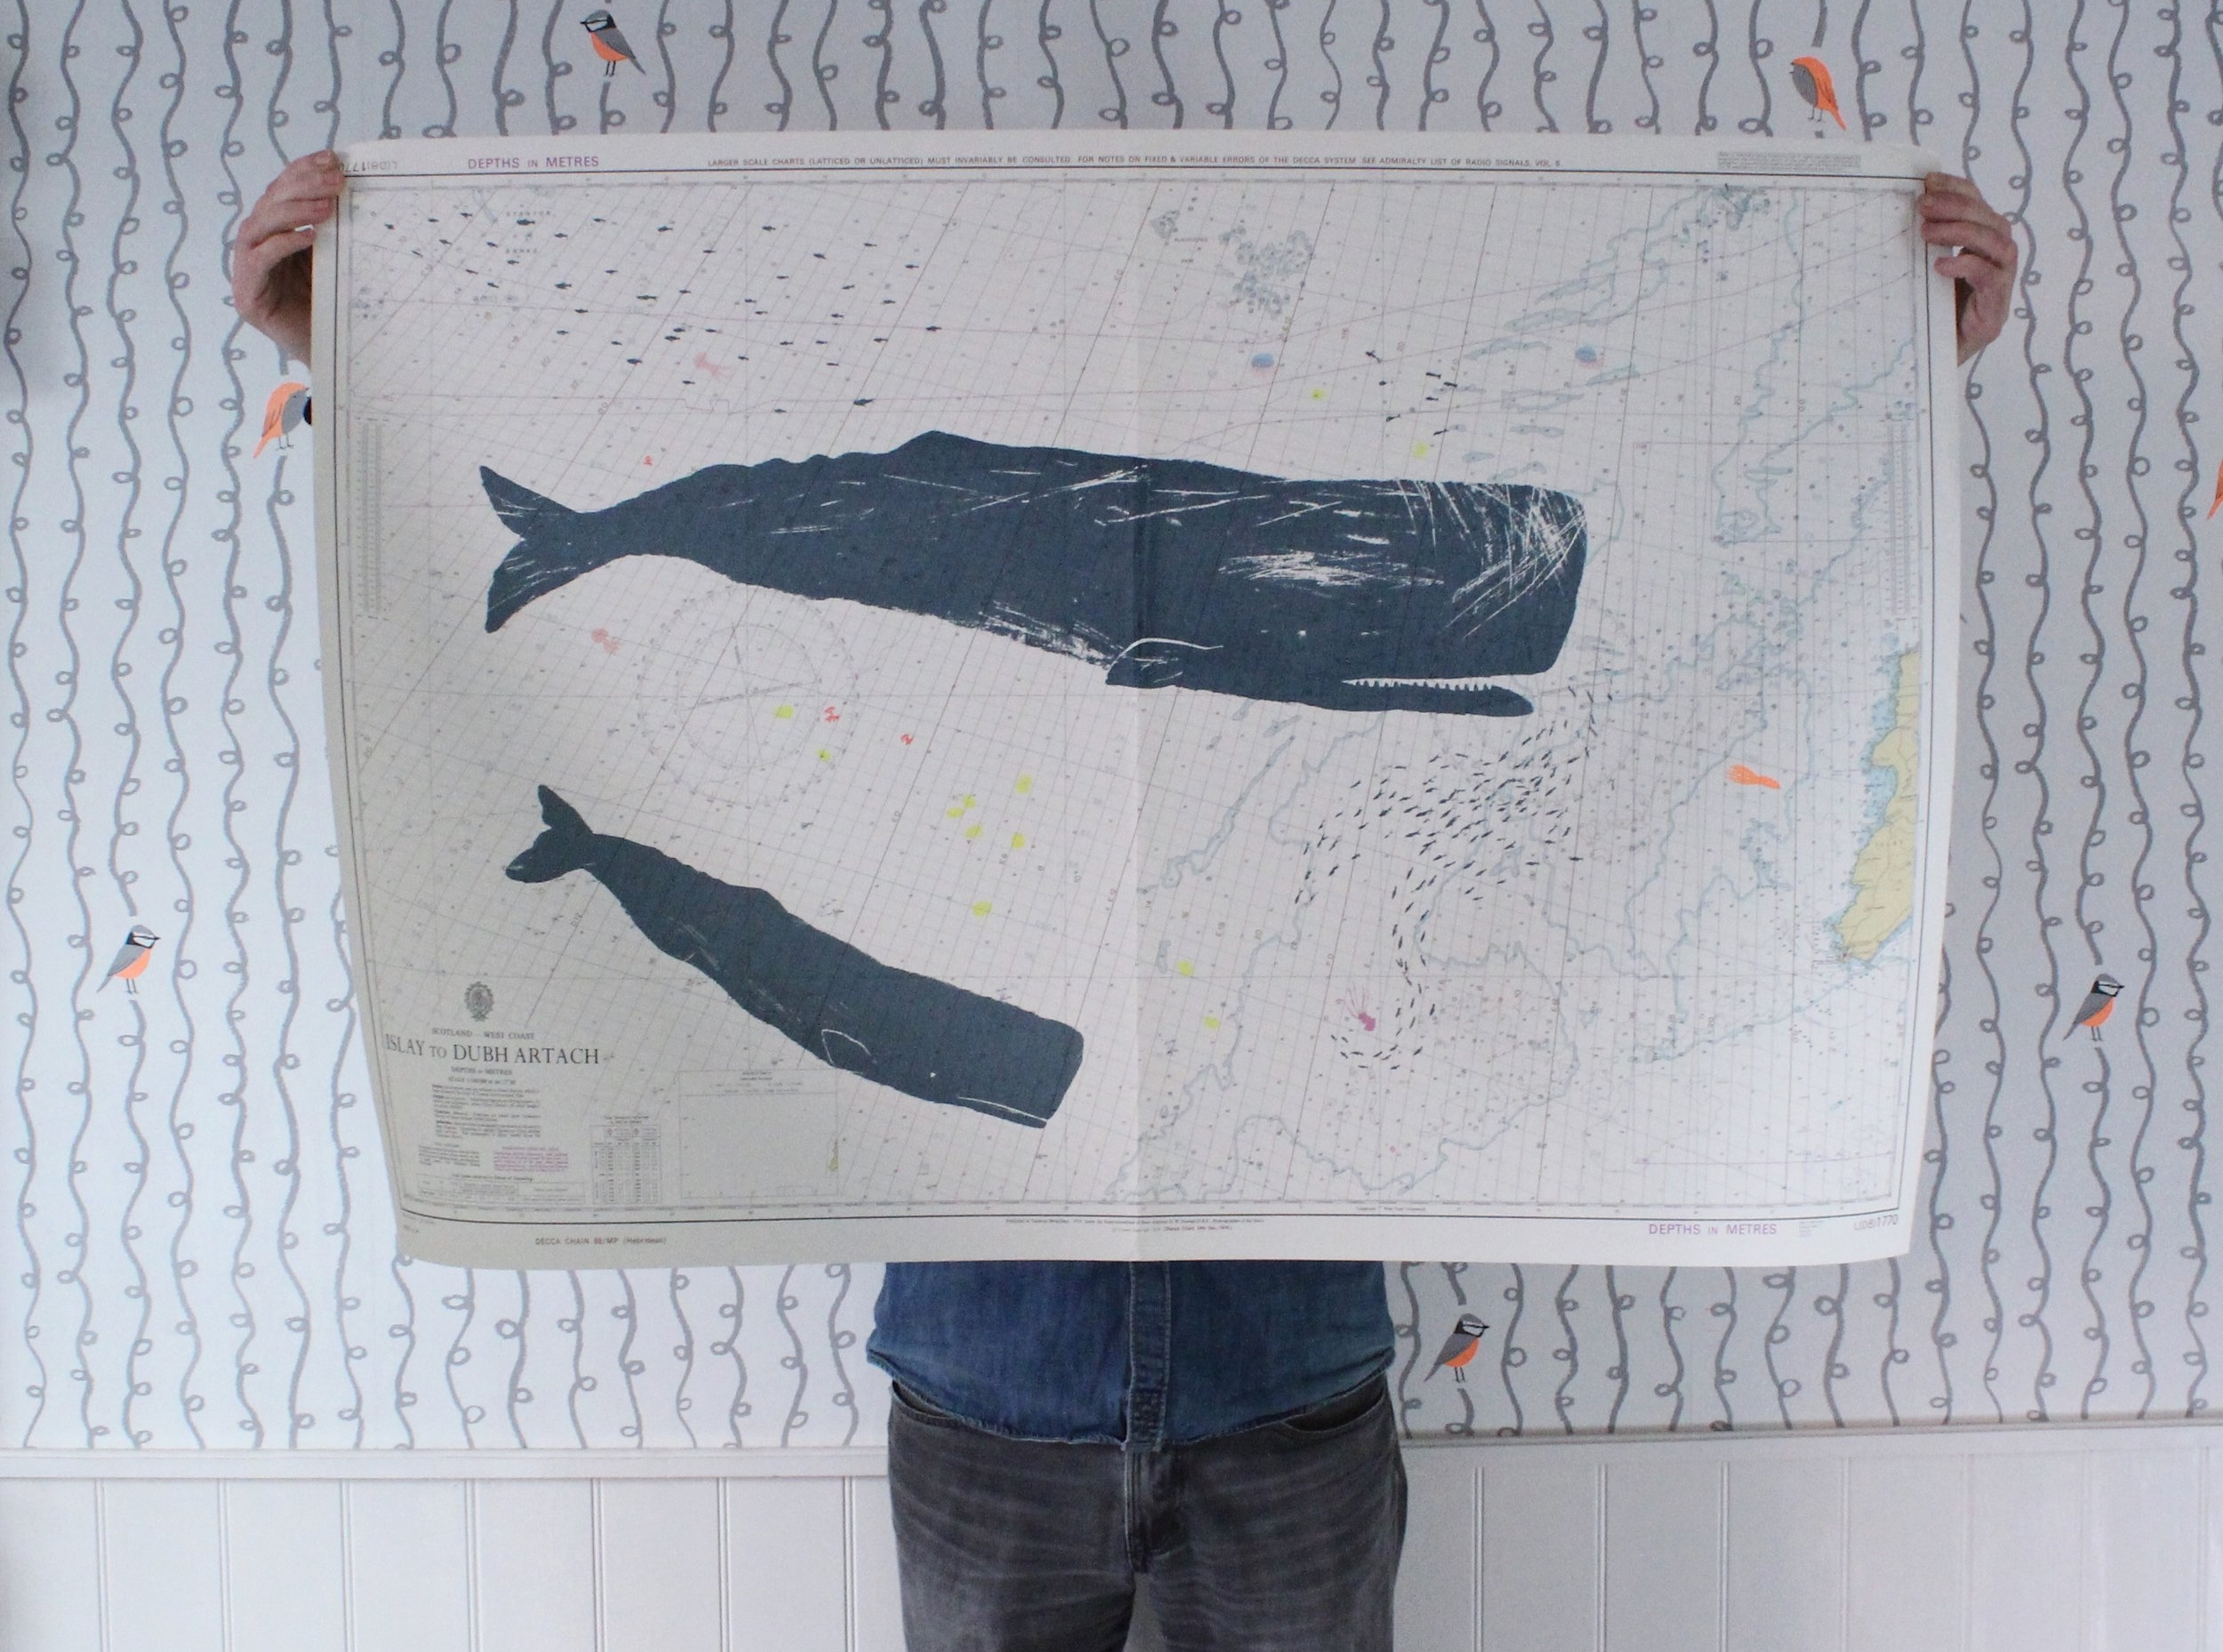 This is one of Gerry's previous spermwhale screen prints. The next edition will be a humpback whale.